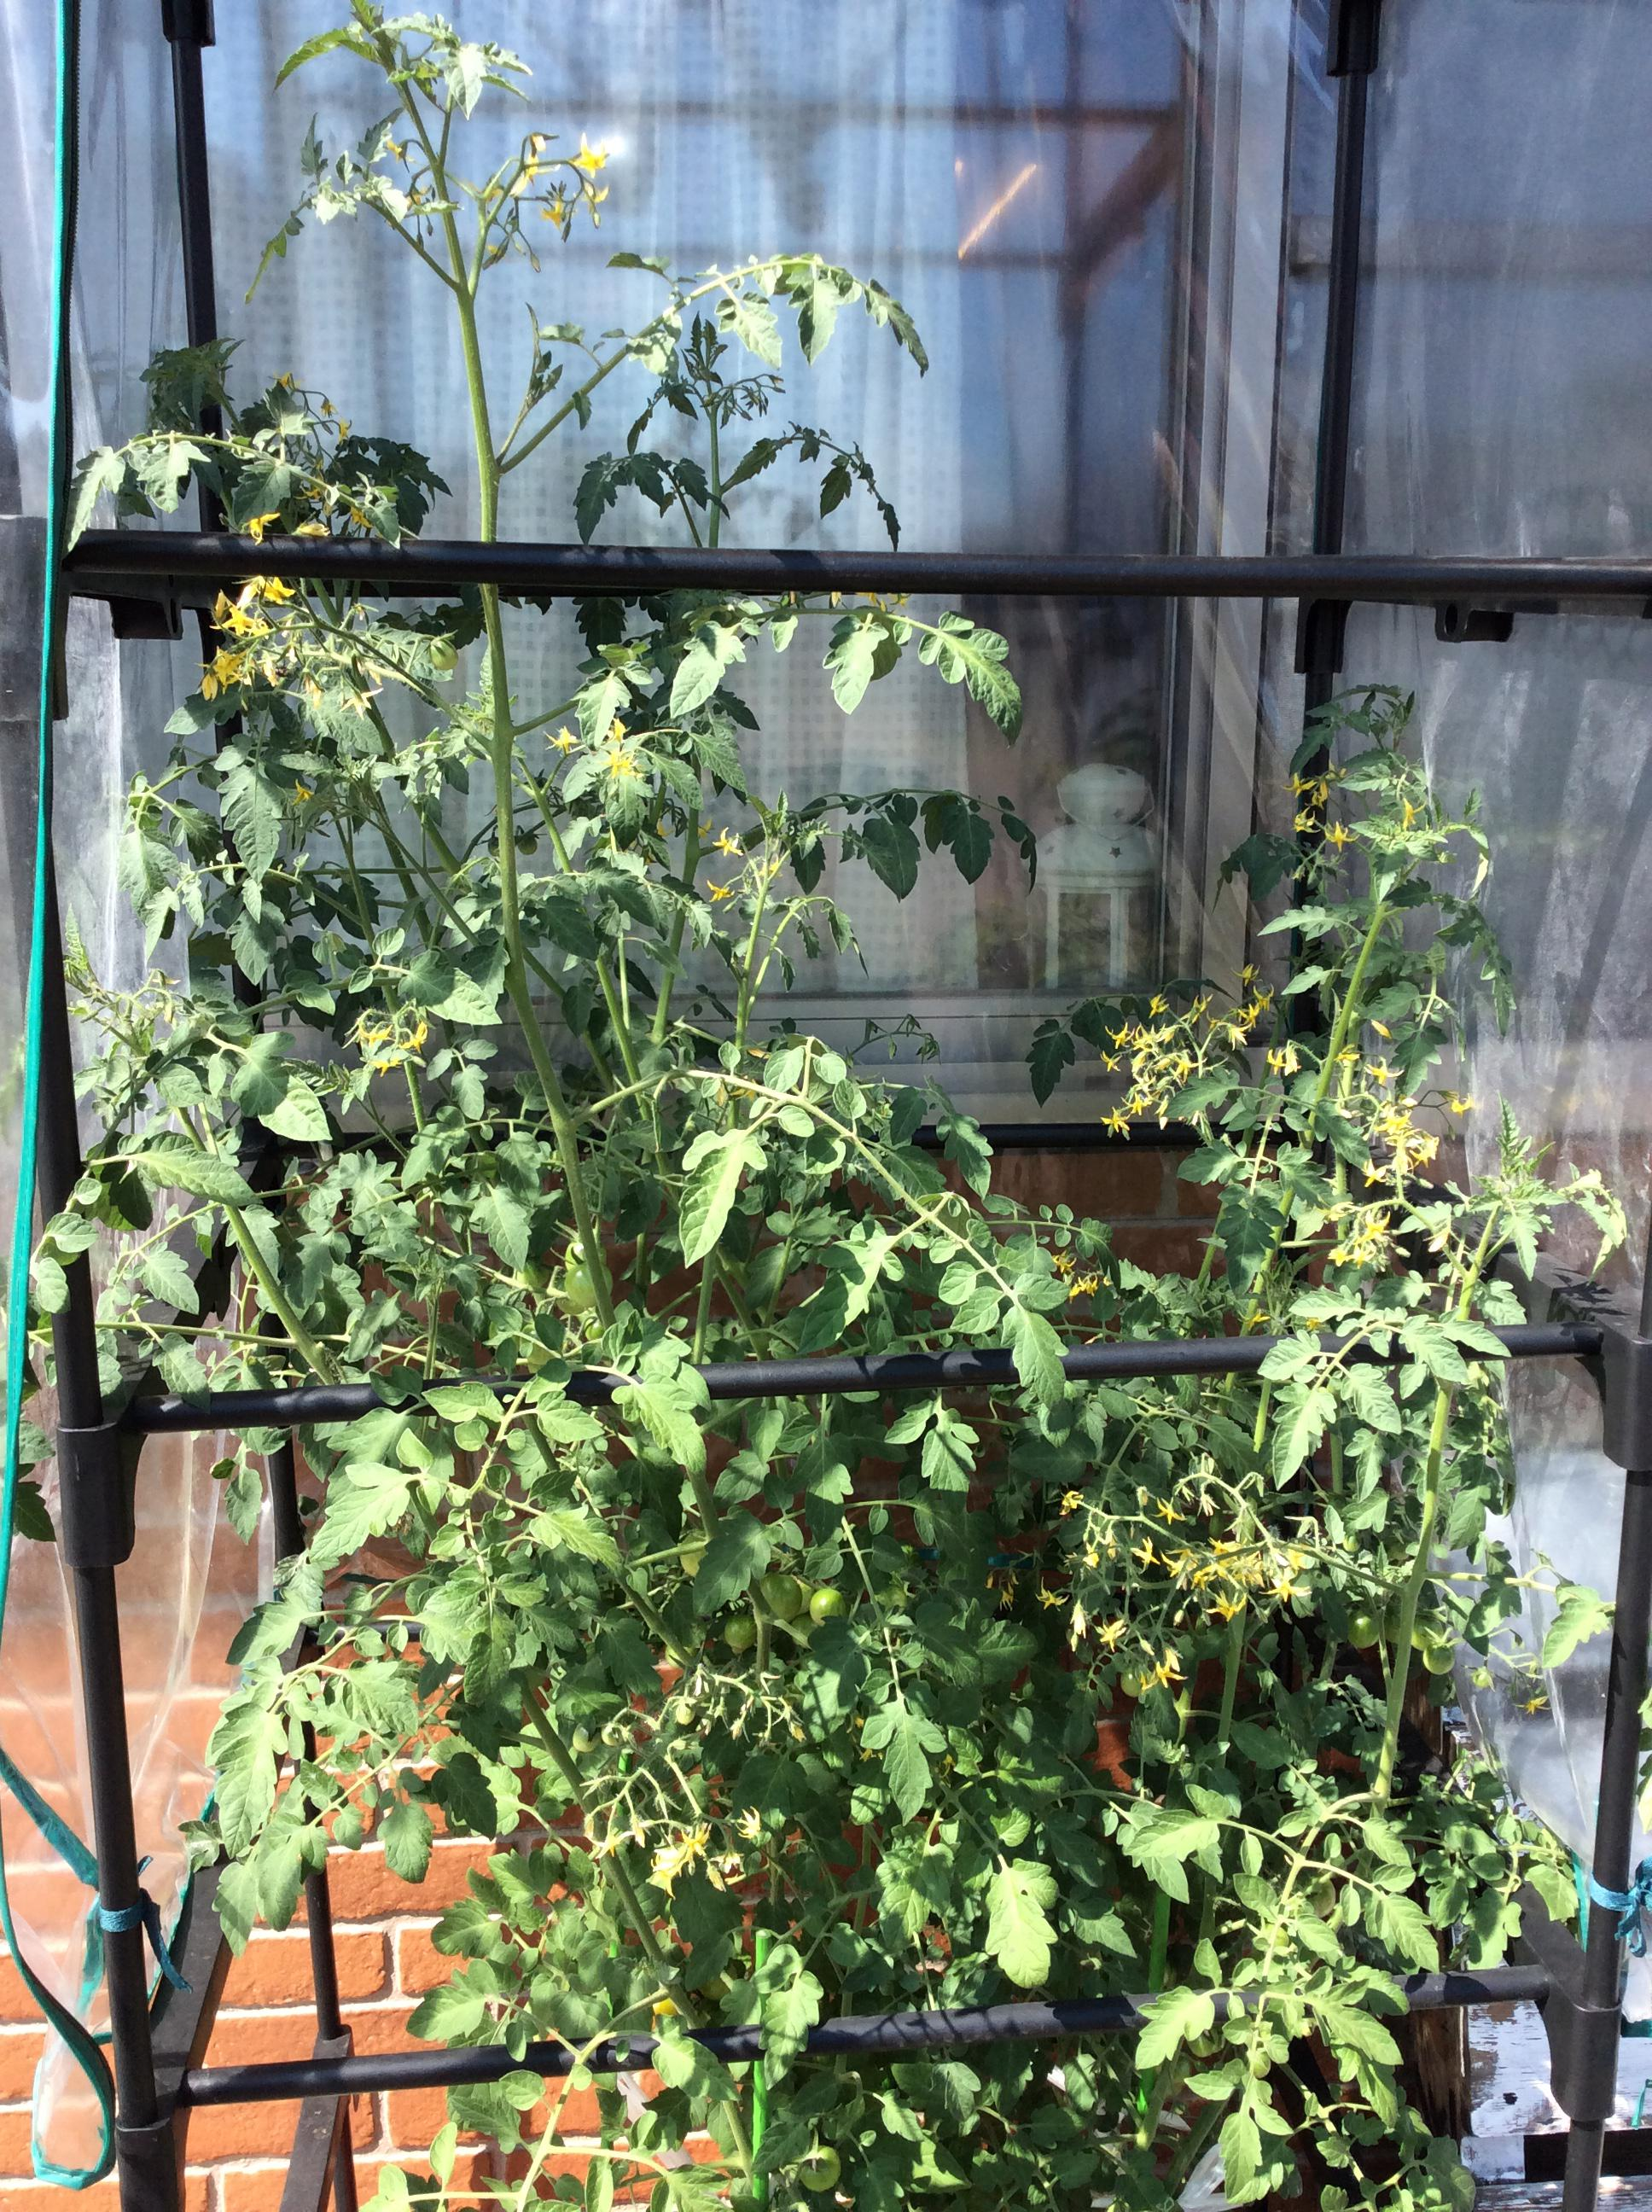 Water culture tomato, it is exceeded height at last!